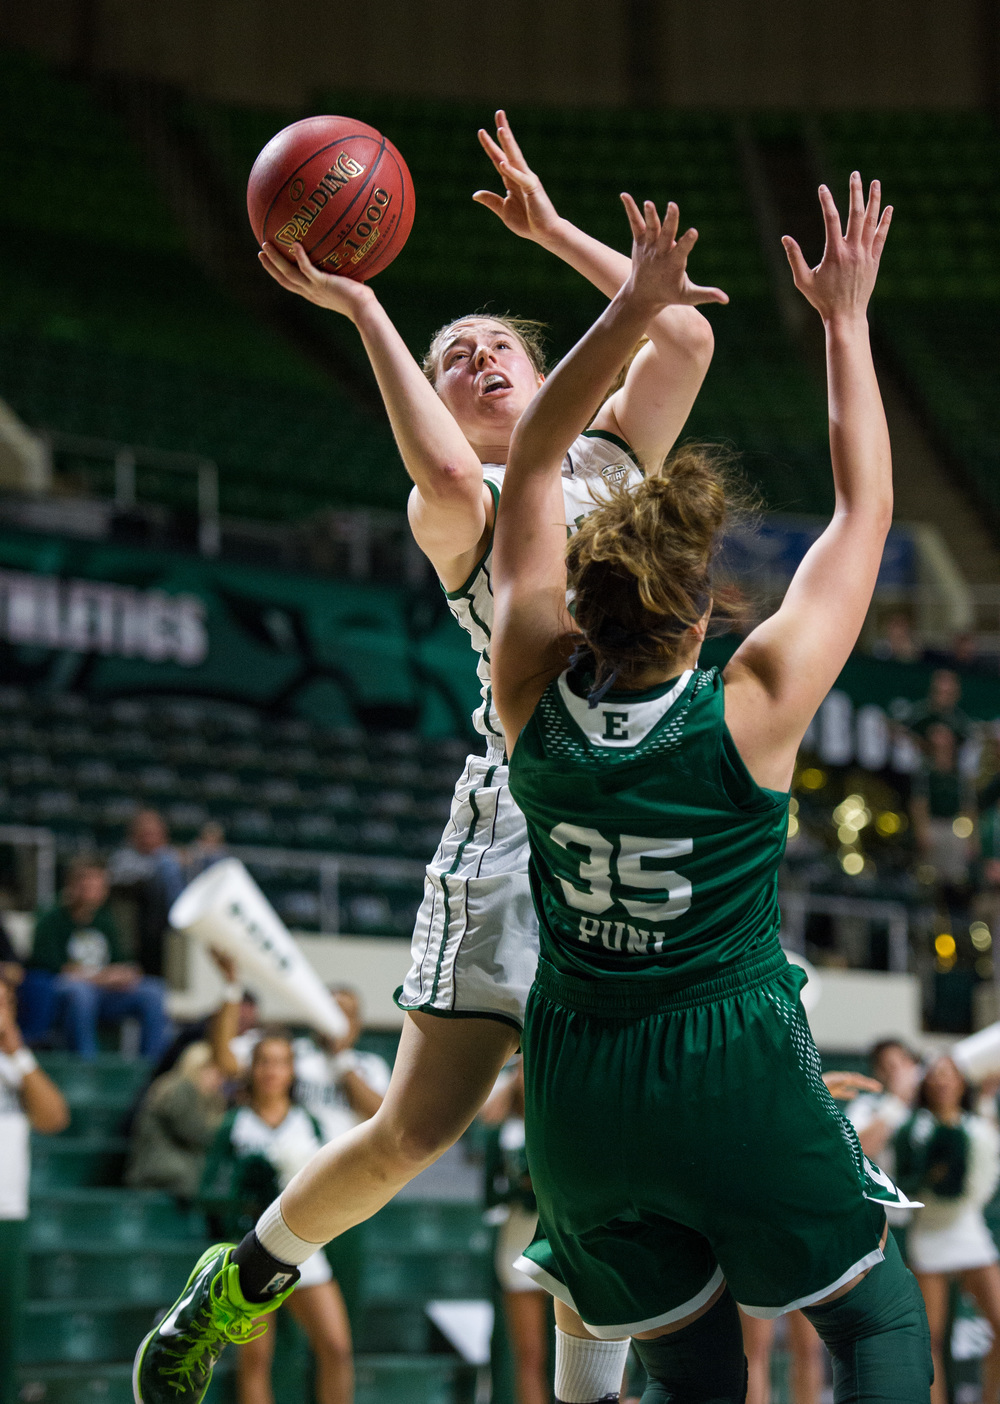 Ohio University sophomore Hannah Boesinger, of Hudson, Ohio, jumps up to the basket to score for the Bobcats amidst the guarding tactics of Eastern Michigan senior Brianna Puni, of St. Charles, Missouri. The Bobcats lost the game 73-61 at the Convocation Center in Athens, Ohio, on February 18, 2015.